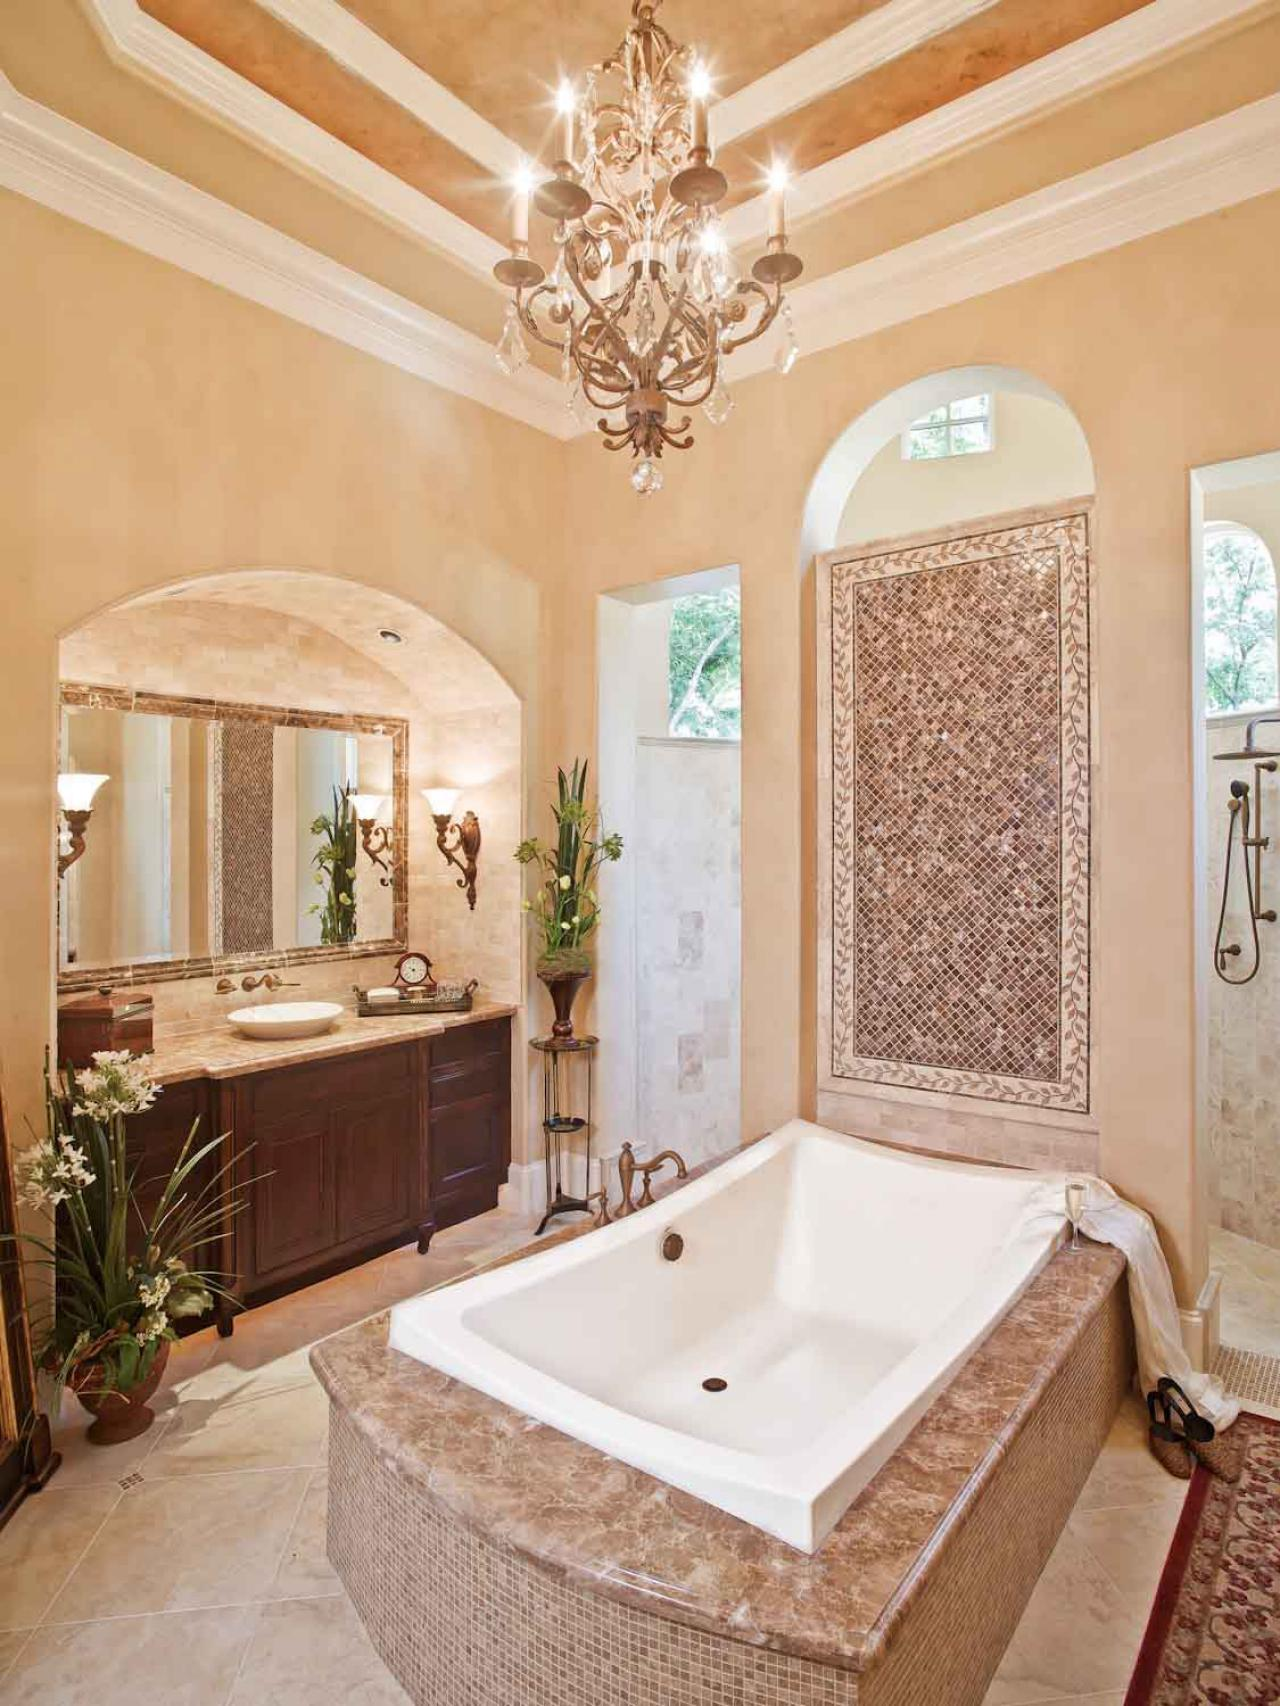 Romantic Bathroom Design Ideas ~ Luxurious bathrooms with elegant chandelier lighting